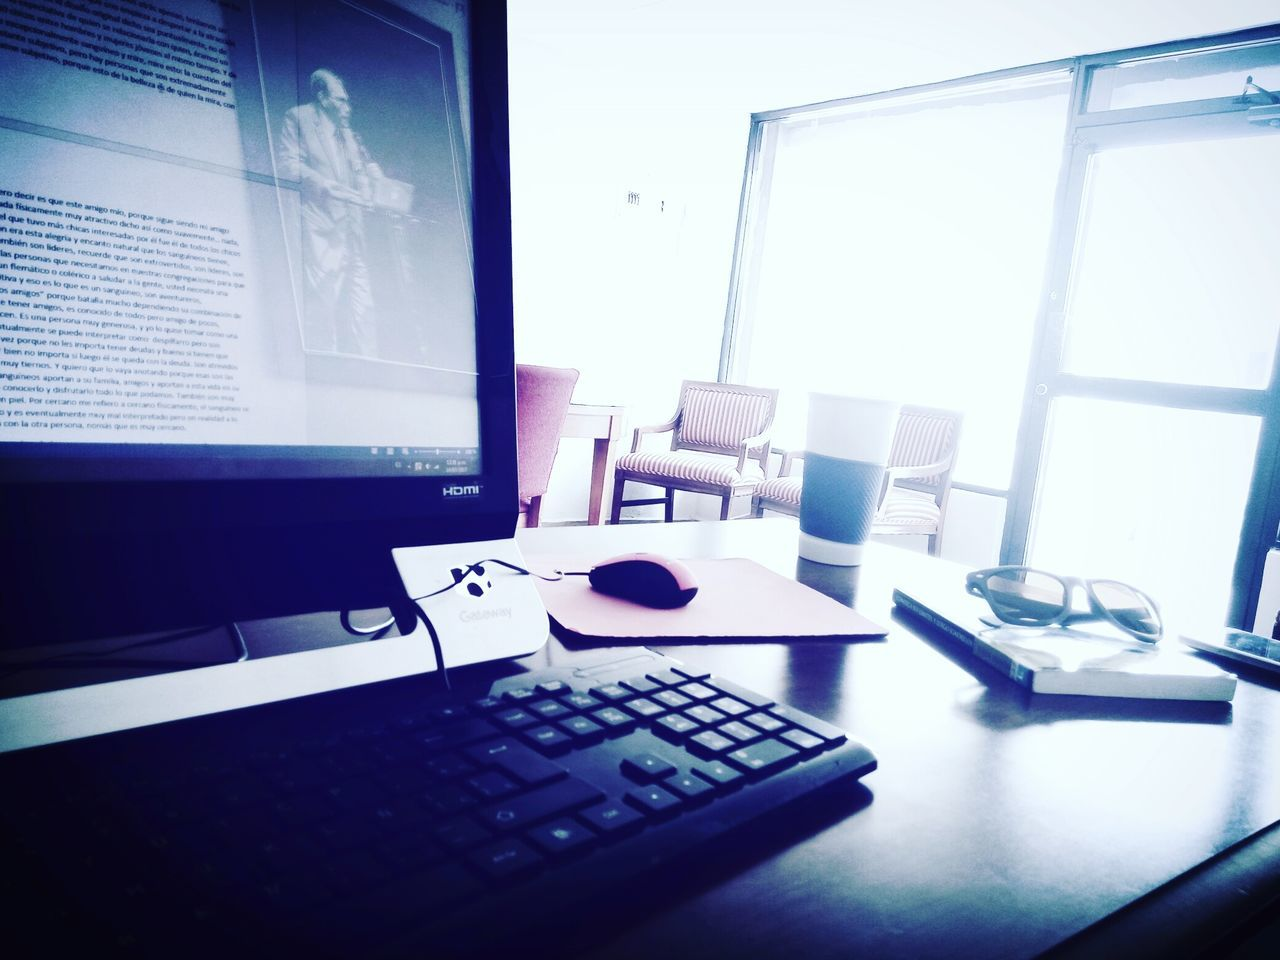 technology, indoors, computer, computer keyboard, table, computer monitor, no people, laptop, desk, window, keyboard, wireless technology, day, computer key, close-up